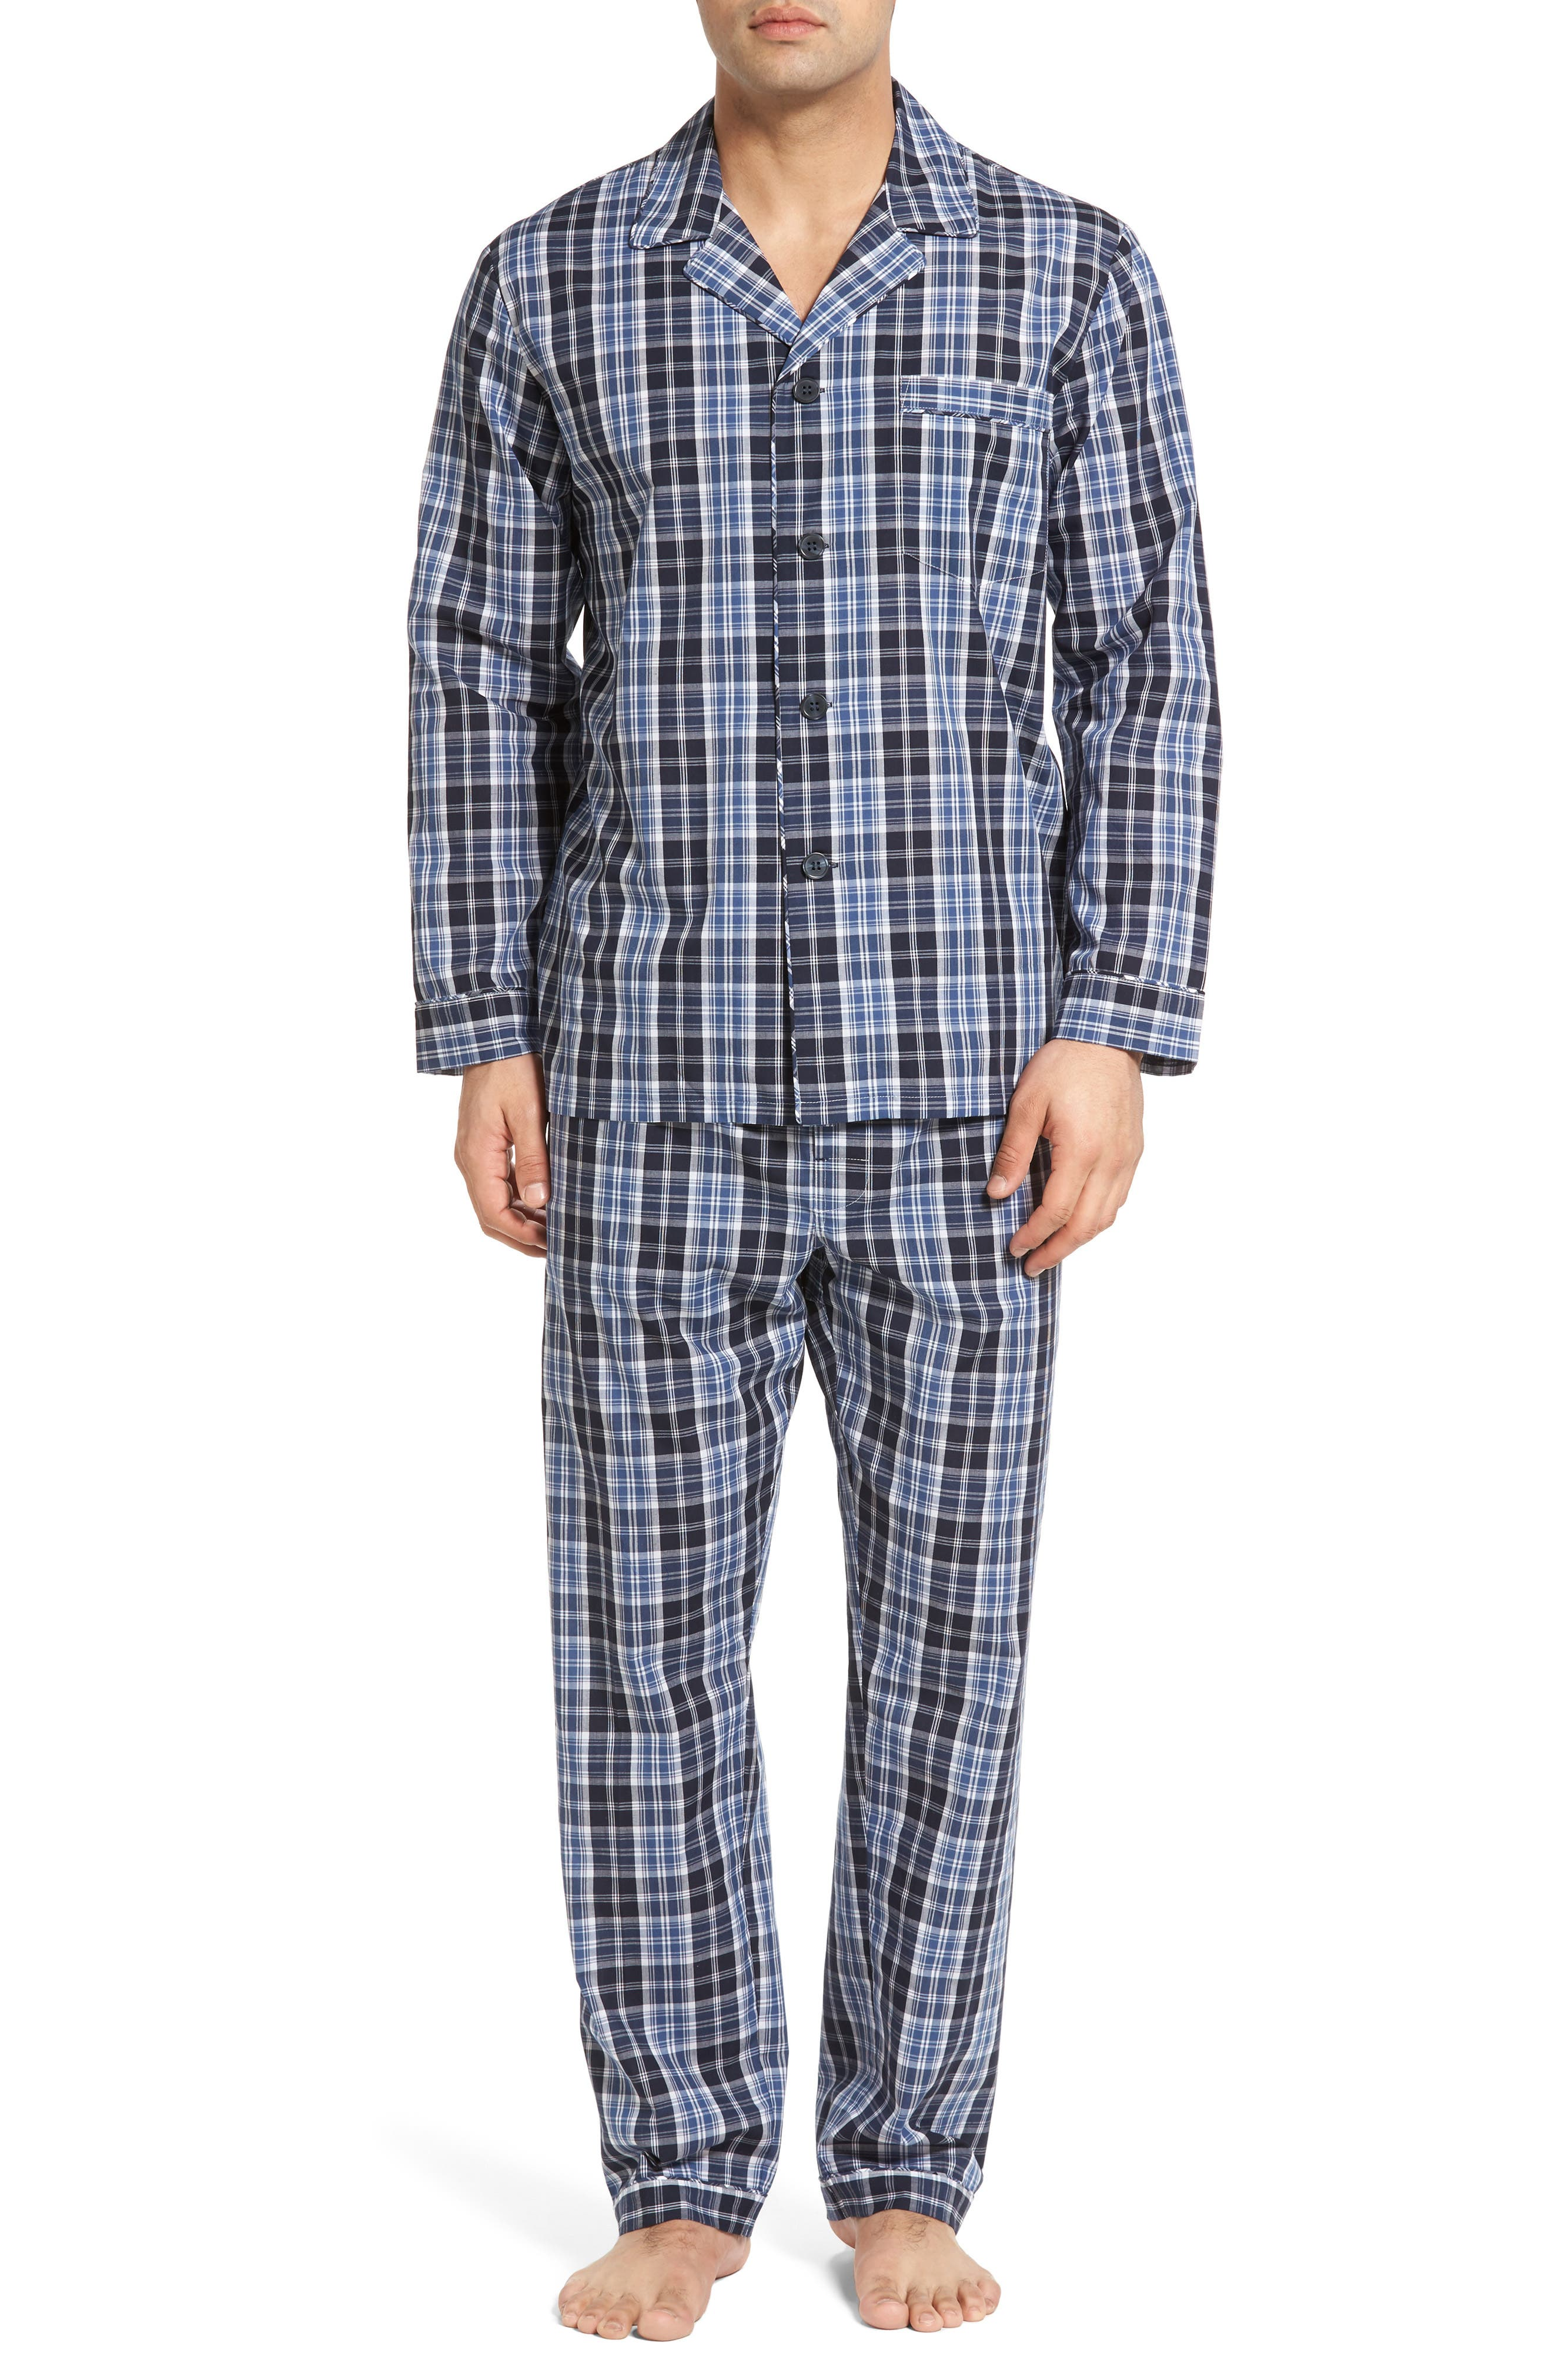 'Ryden' Cotton Blend Pajamas,                         Main,                         color, 001